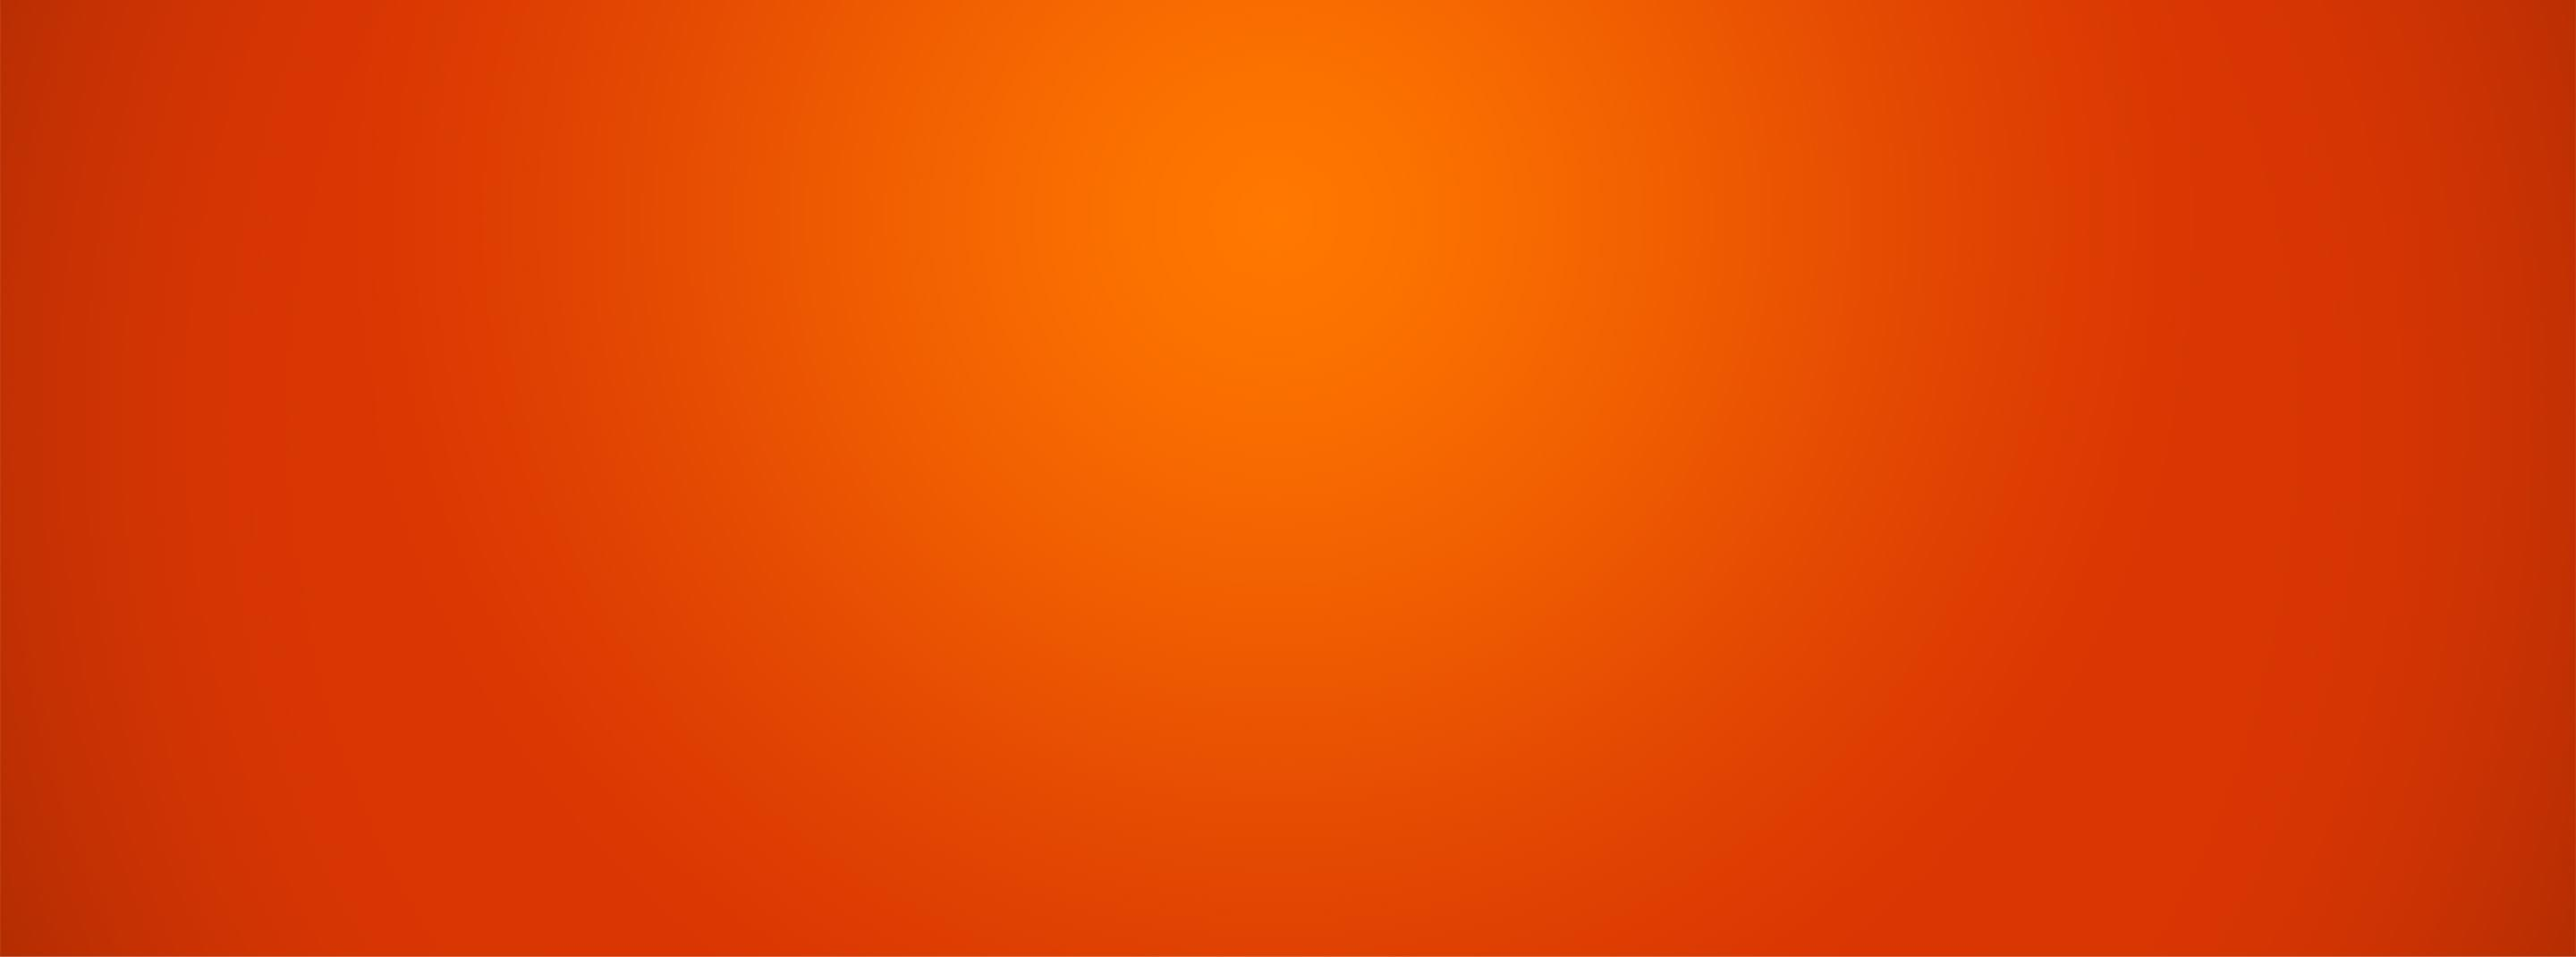 DAILY GRAND orange background